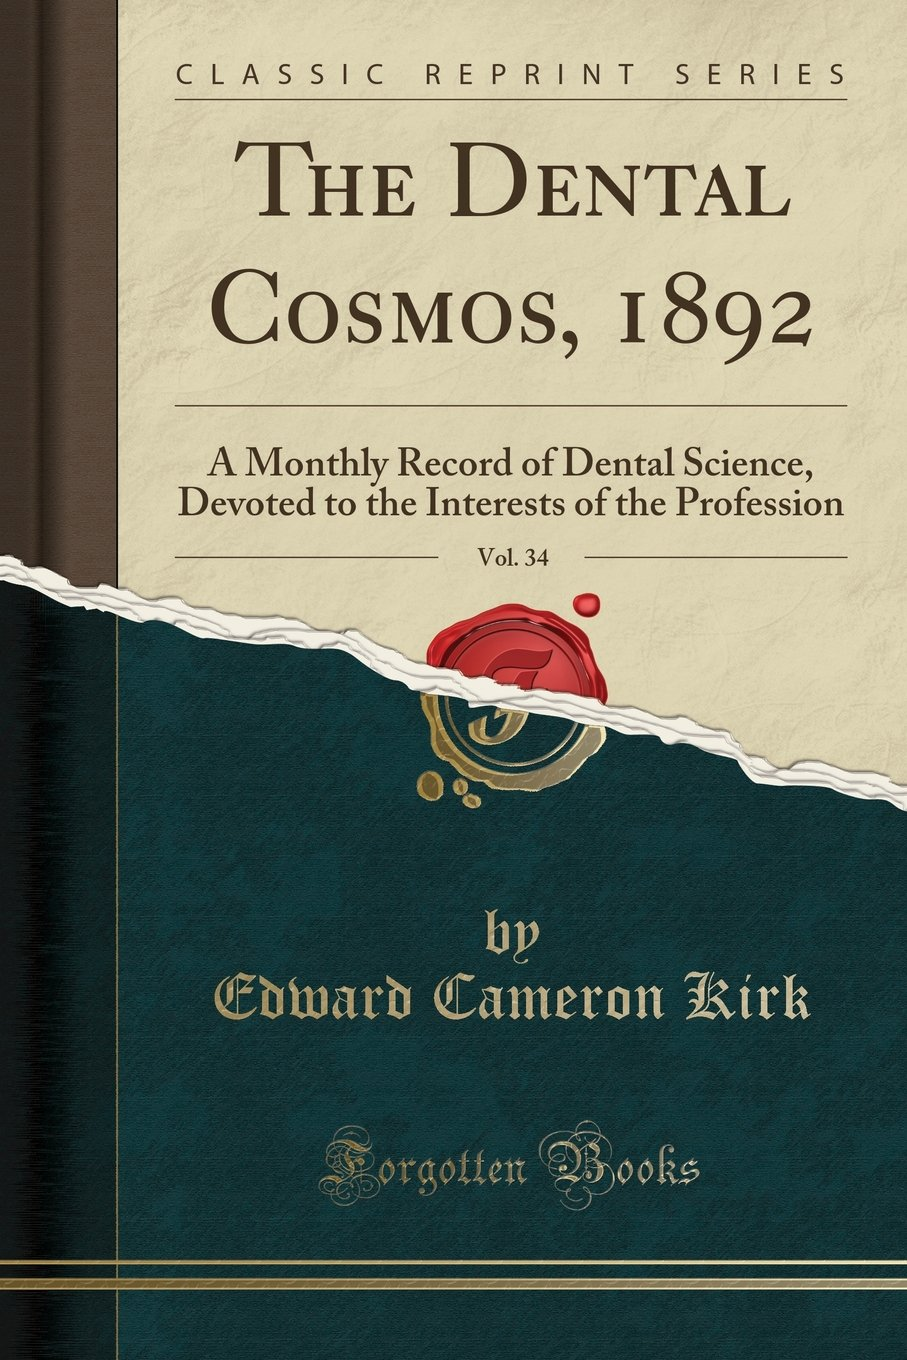 Download The Dental Cosmos, 1892, Vol. 34: A Monthly Record of Dental Science, Devoted to the Interests of the Profession (Classic Reprint) pdf epub